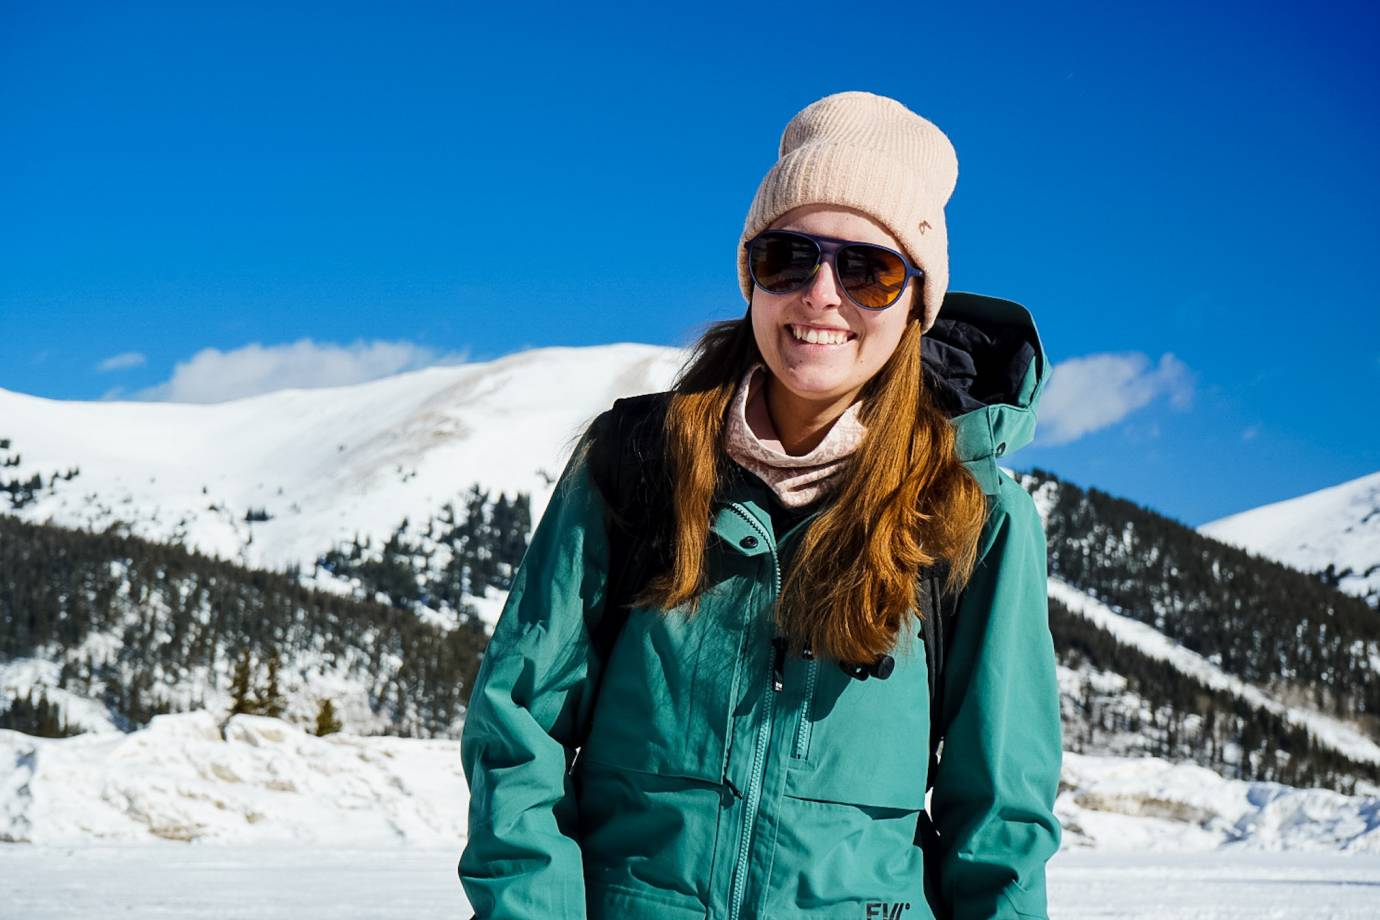 Editor Mary Murphy in the backcountry wearing an FW Ski Jacket, GORE-TEX bibs, pink hat and sunglasses